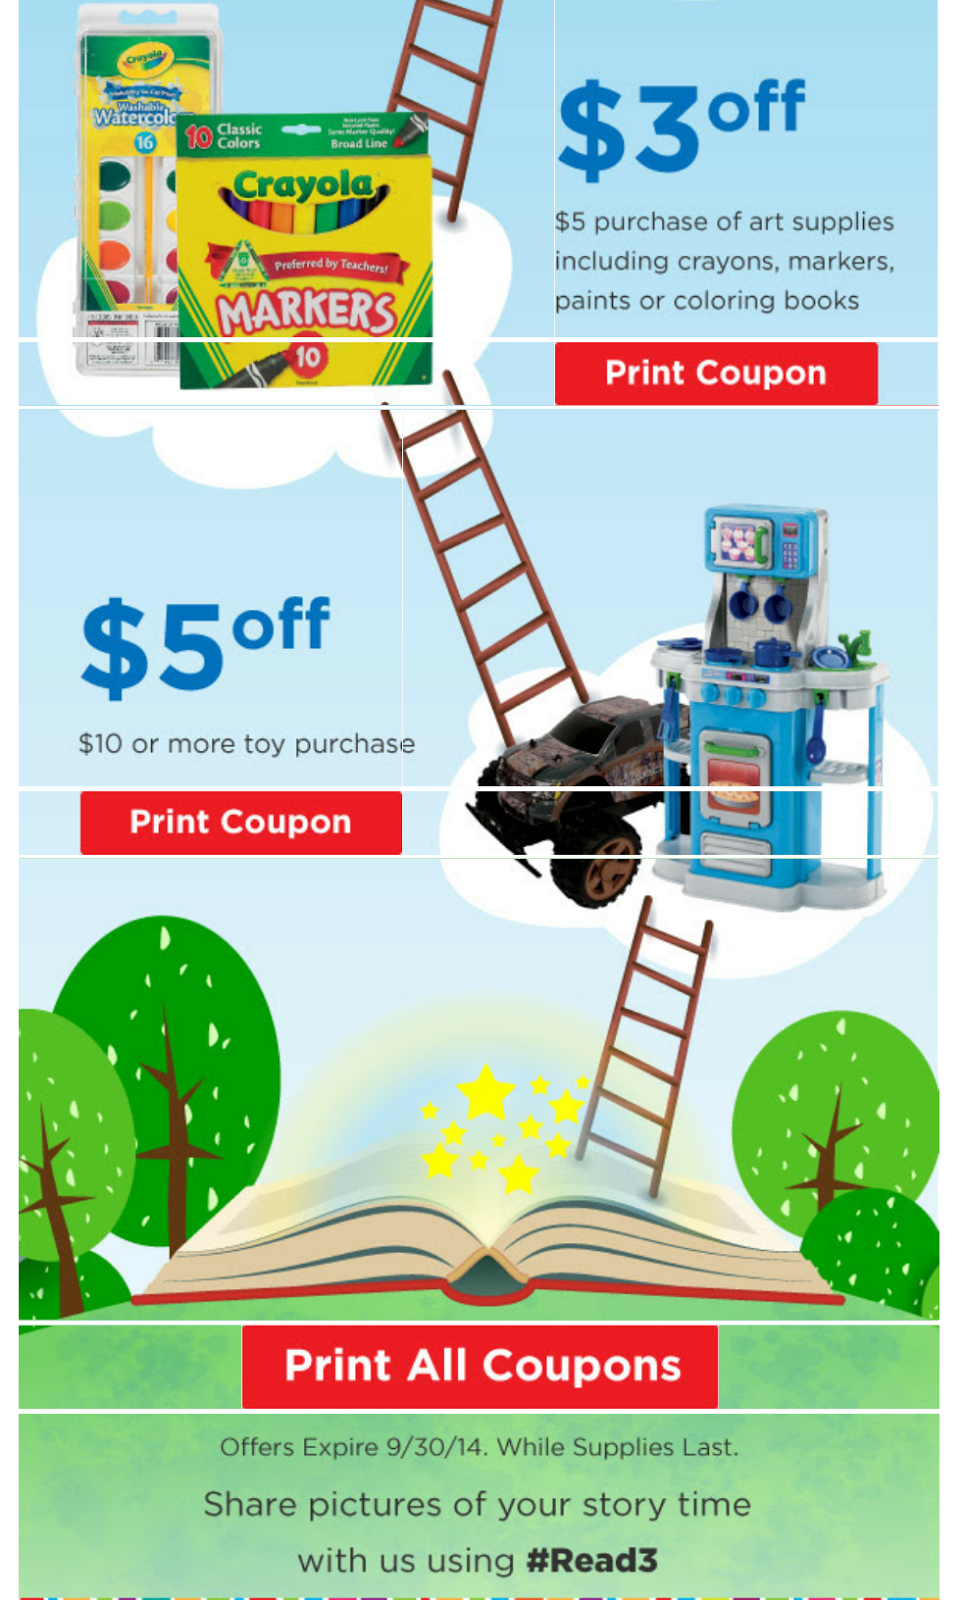 photo about Heb Printable Coupons identify Melissas Coupon Savings: $11 worthy of of HEB printable